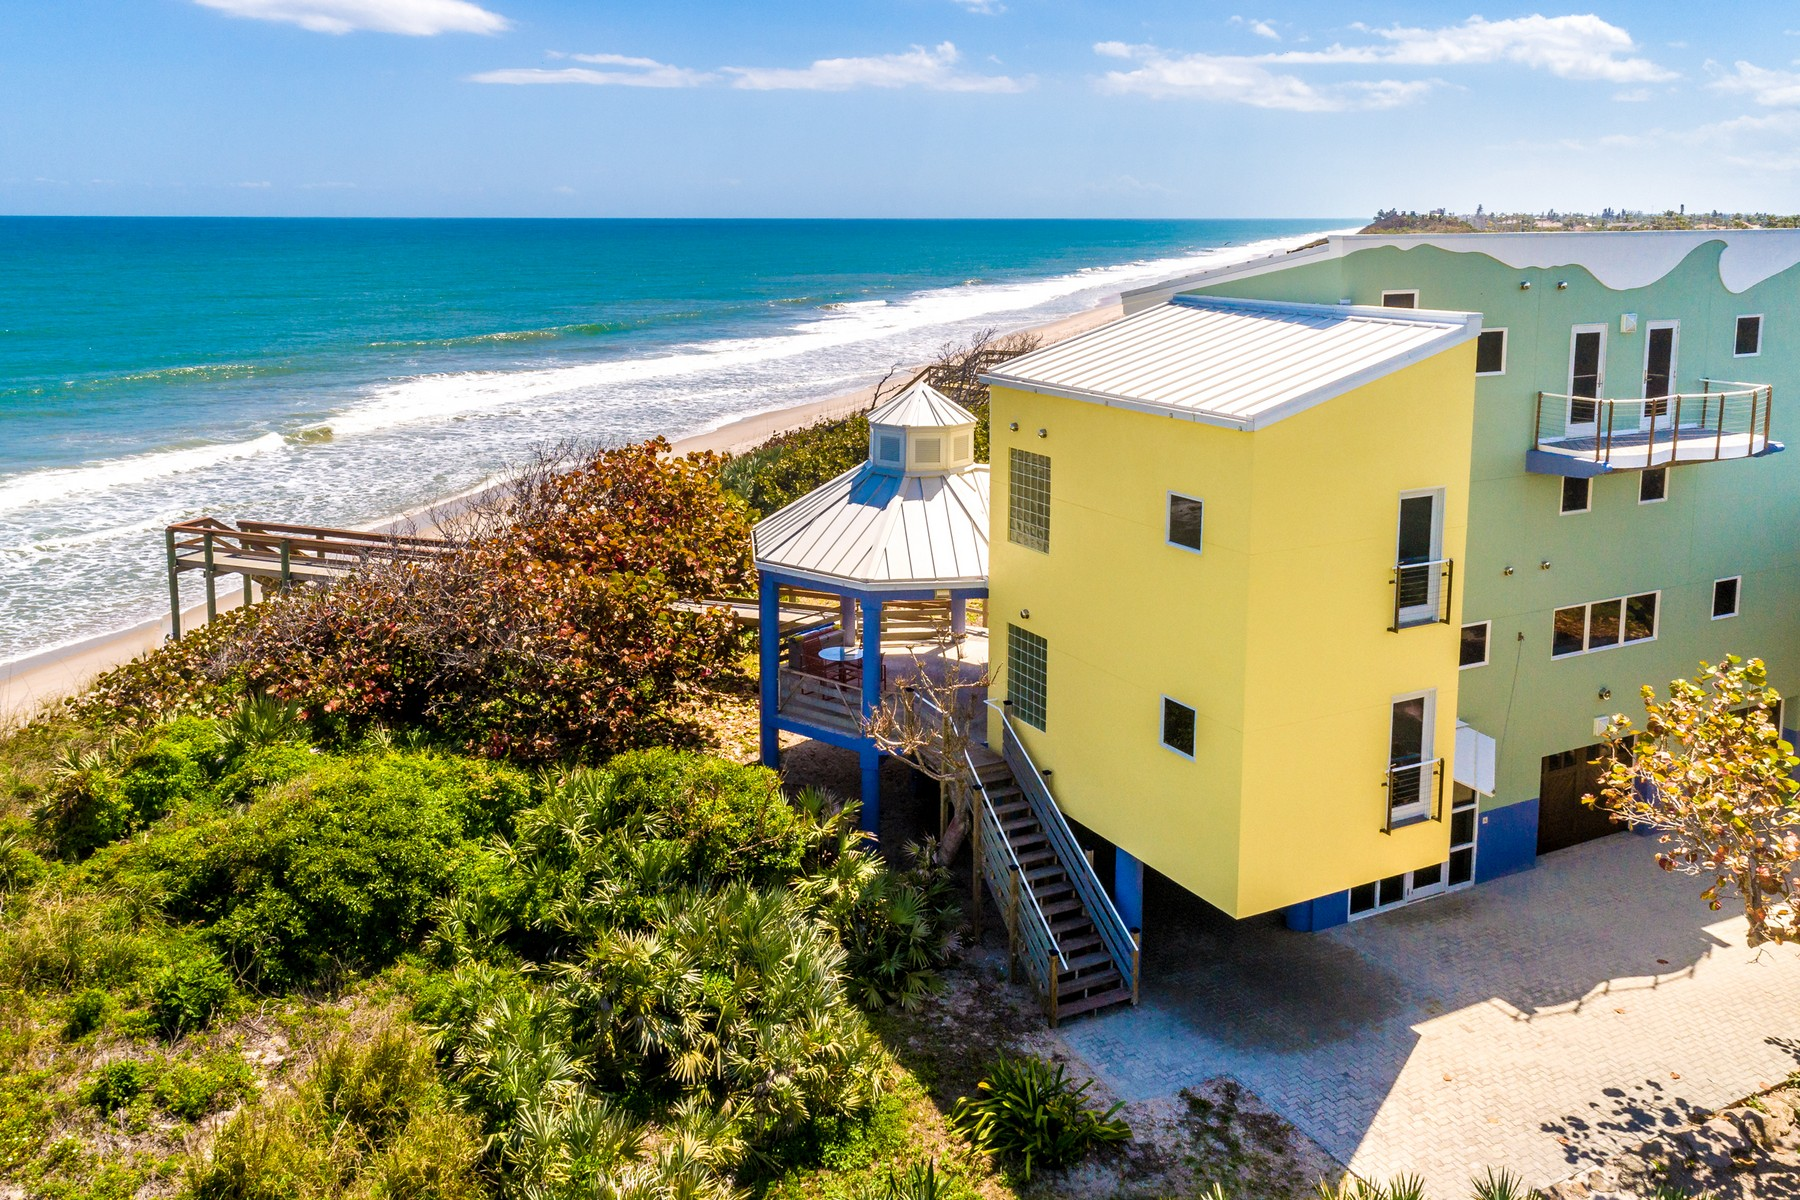 Single Family Homes için Satış at Spectacular Oceanfront Home Bordering Nature Preserve. 4515 Highway A1A, Melbourne Beach, Florida 32951 Amerika Birleşik Devletleri